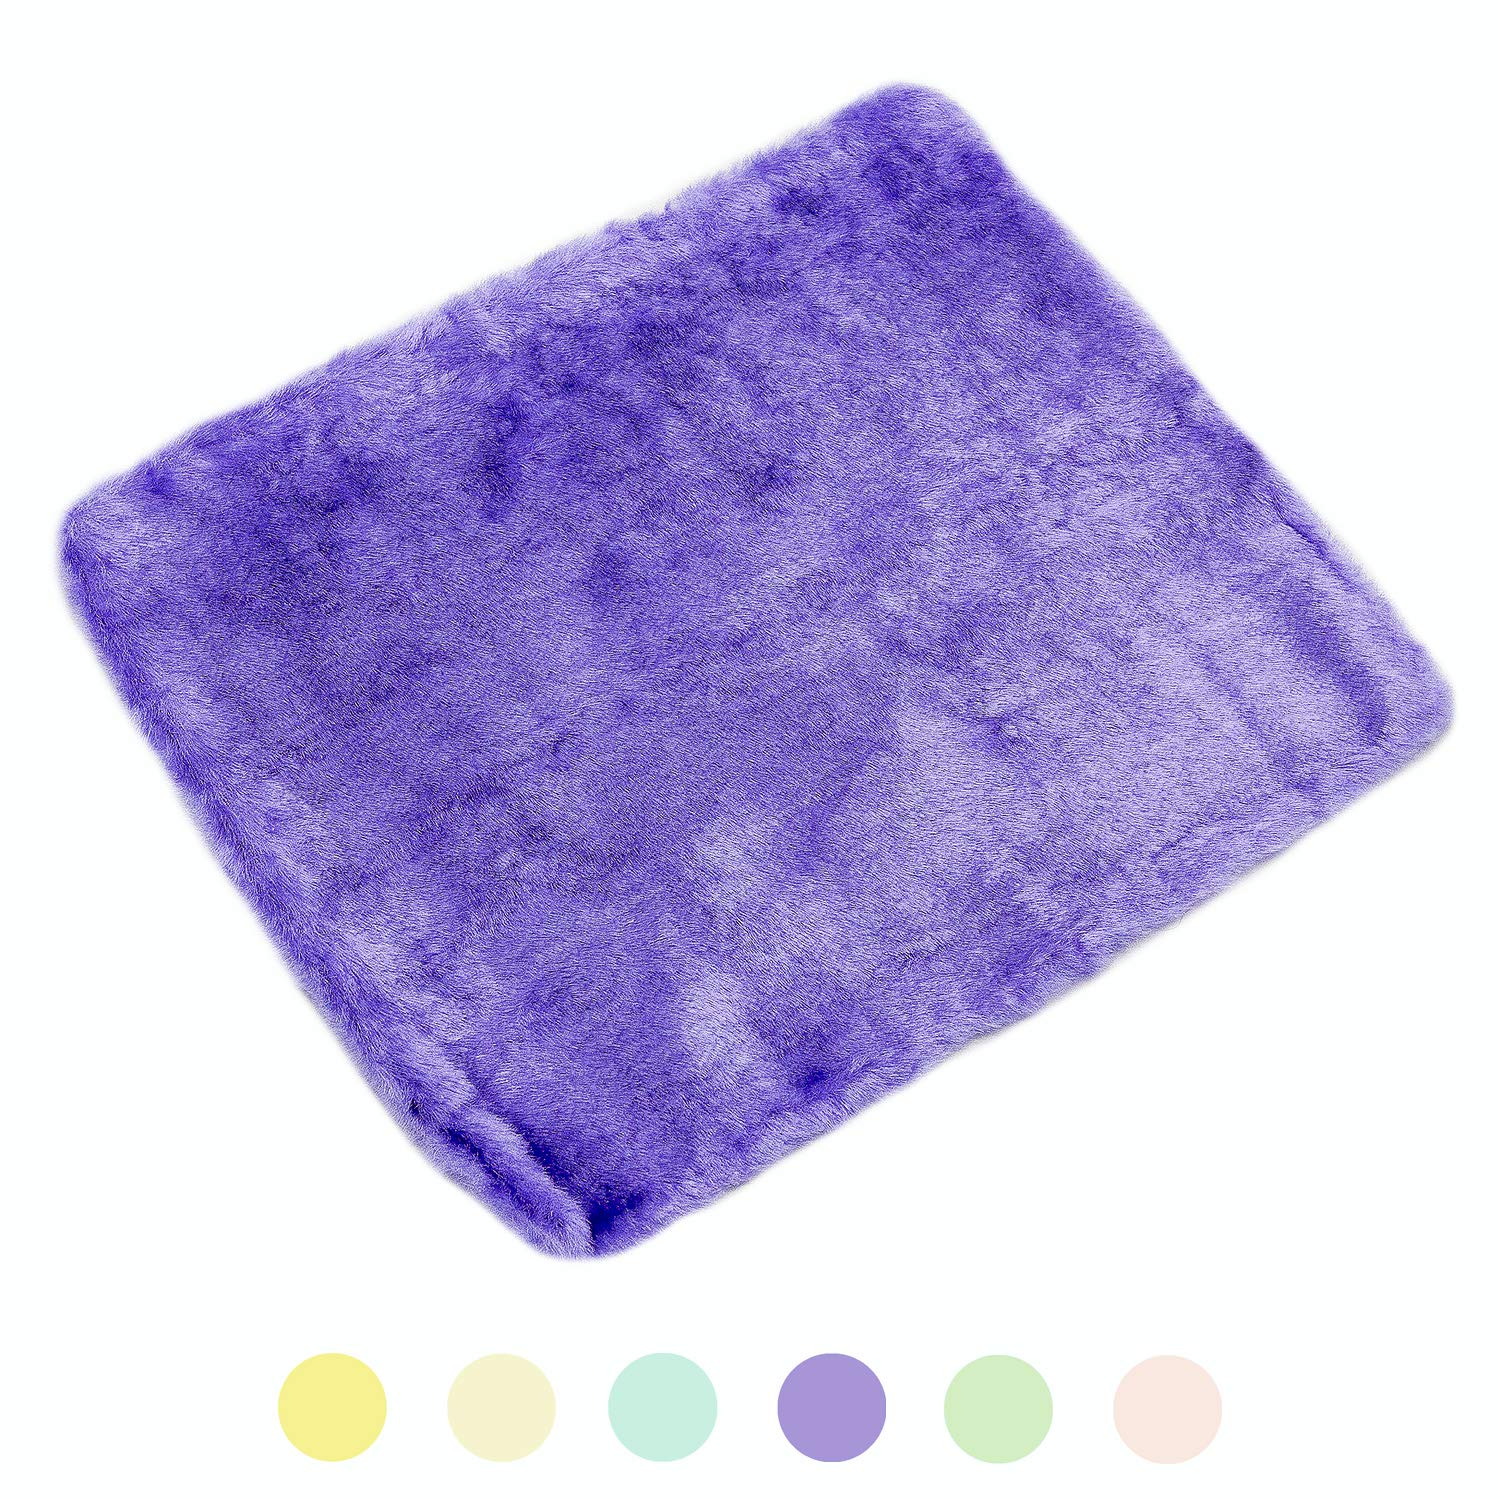 Bellring Cleaning Cloth - Magic Towel for Car, Kitchen, Makeup Remover and Houseware - Pack of 1 (Colors May Vary) 1